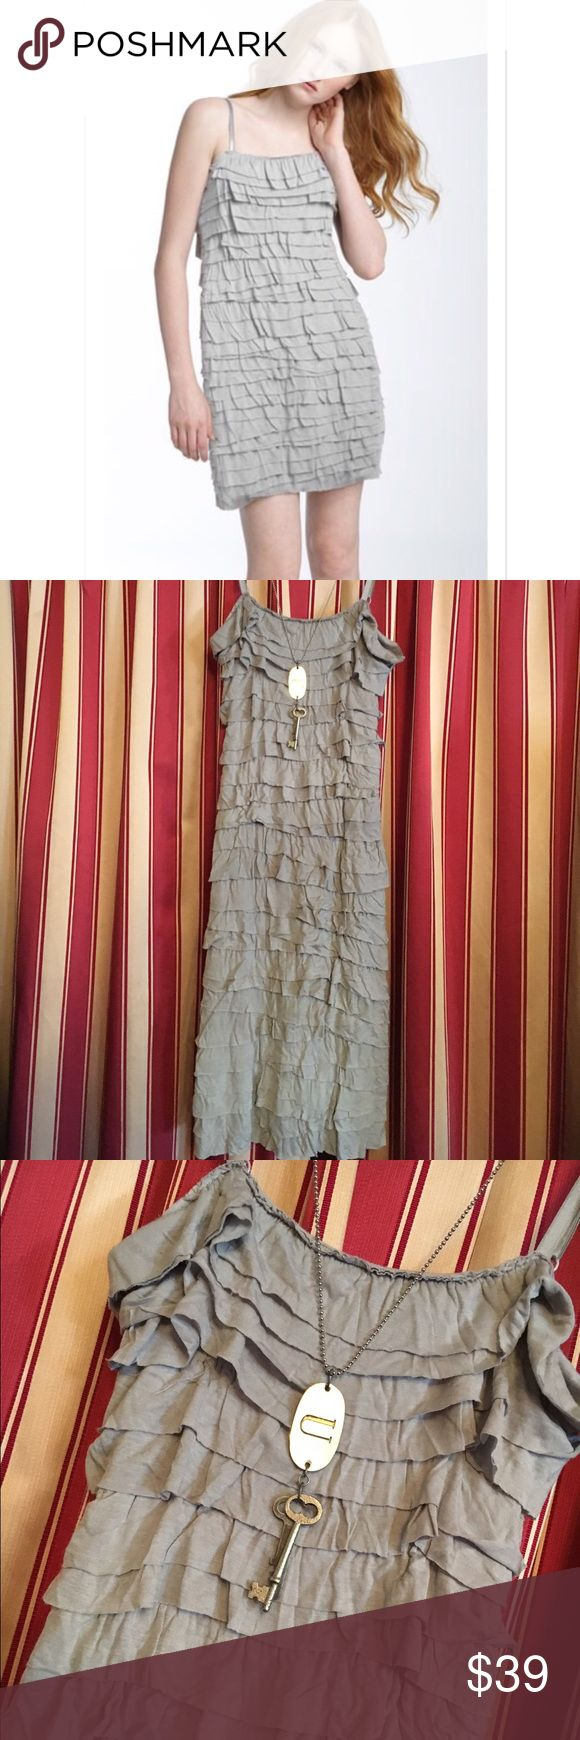 Bailey 44 gray tiered dress Bailey 44 tiered rayon gray comfy dress Bailey 44 Dresses Mini